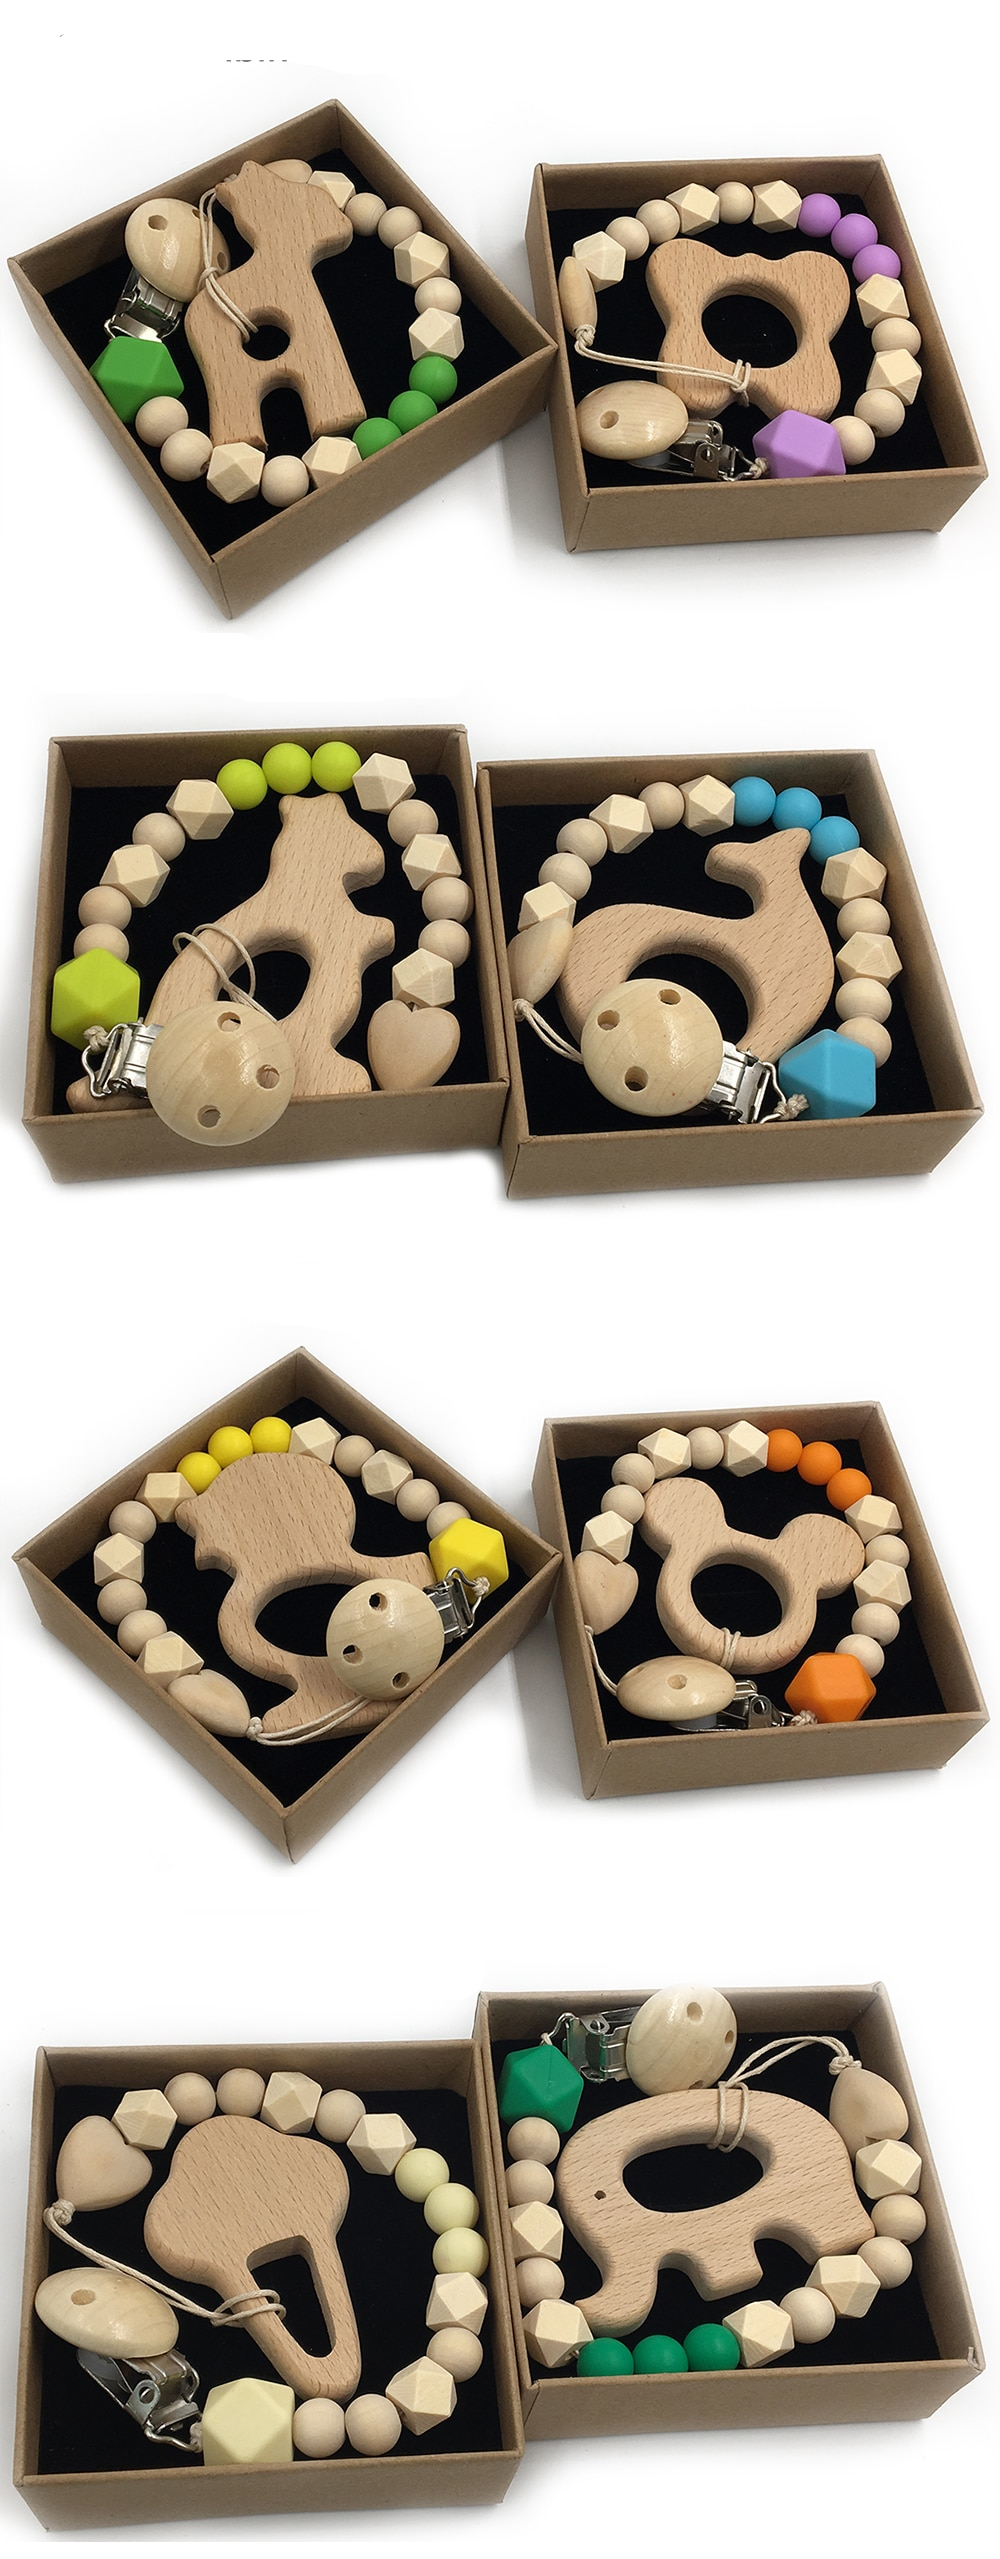 Animal Shaped Organic Wood Baby Teether with Grasping Toy 2 pcs Set